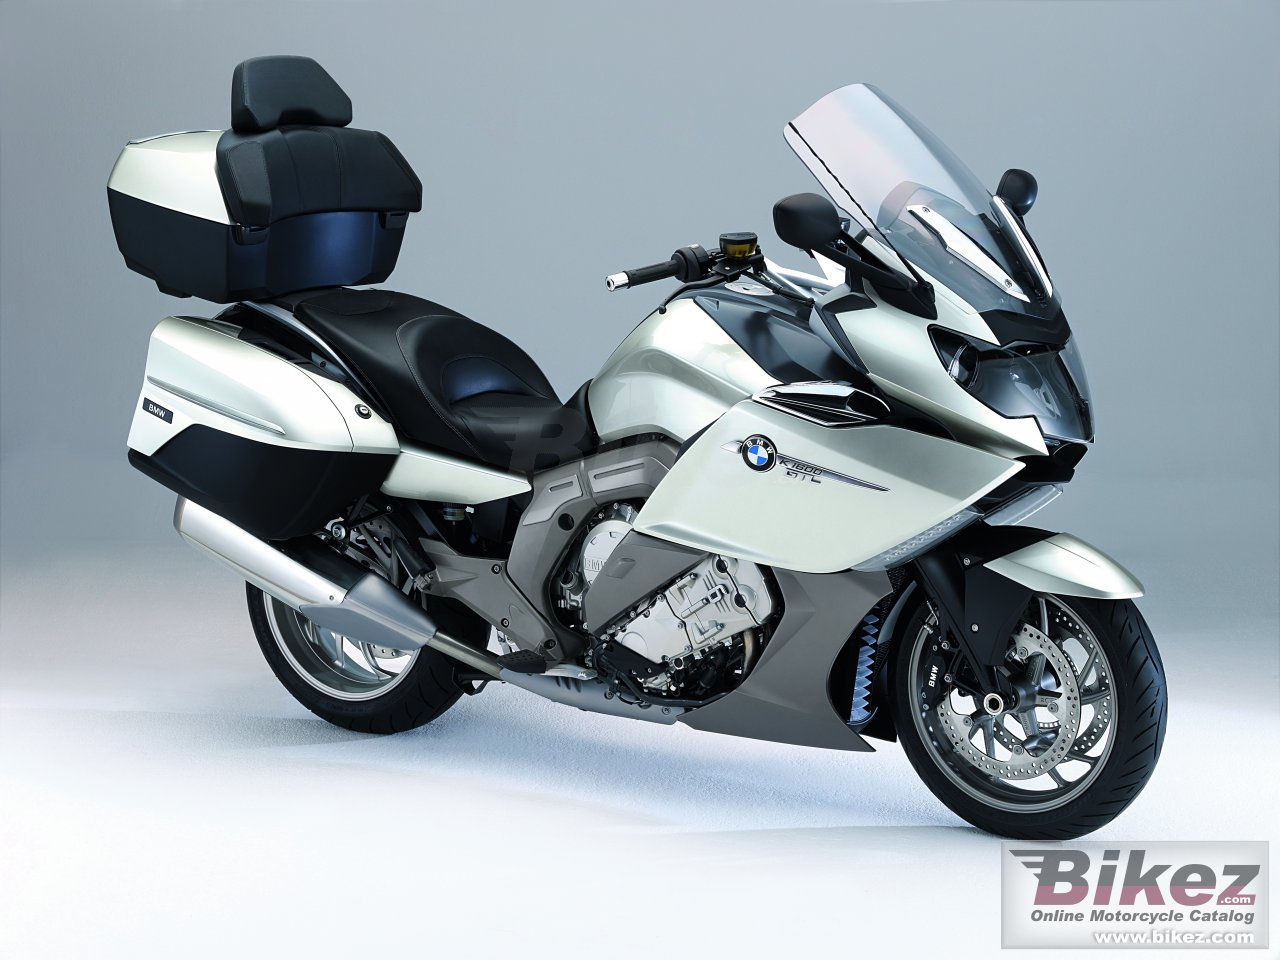 Big BMW k 1600 gtl picture and wallpaper from Bikez.com